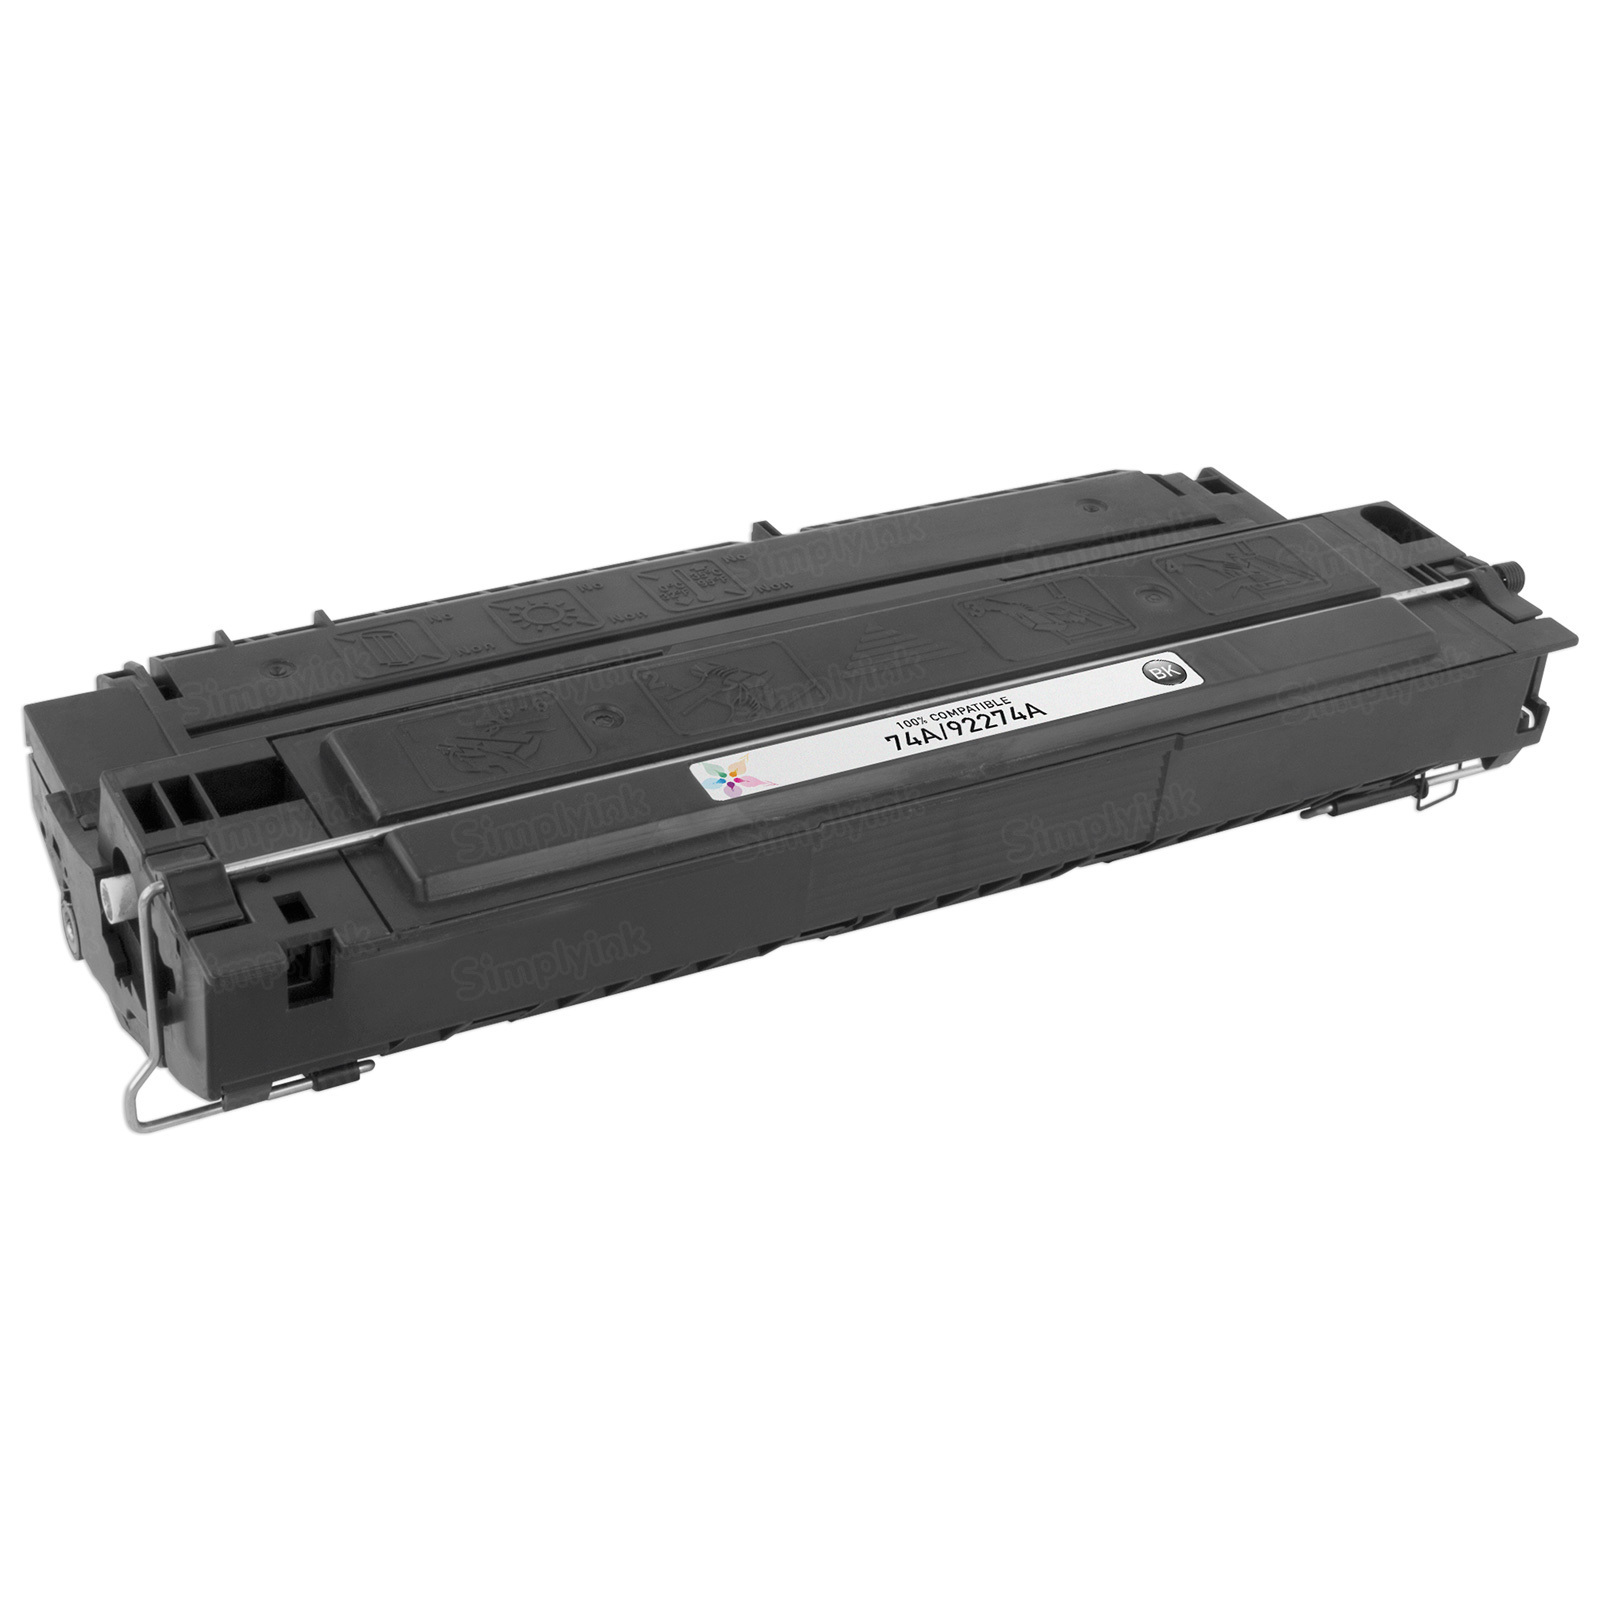 Remanufactured Replacement Black Laser Toner for HP 74A